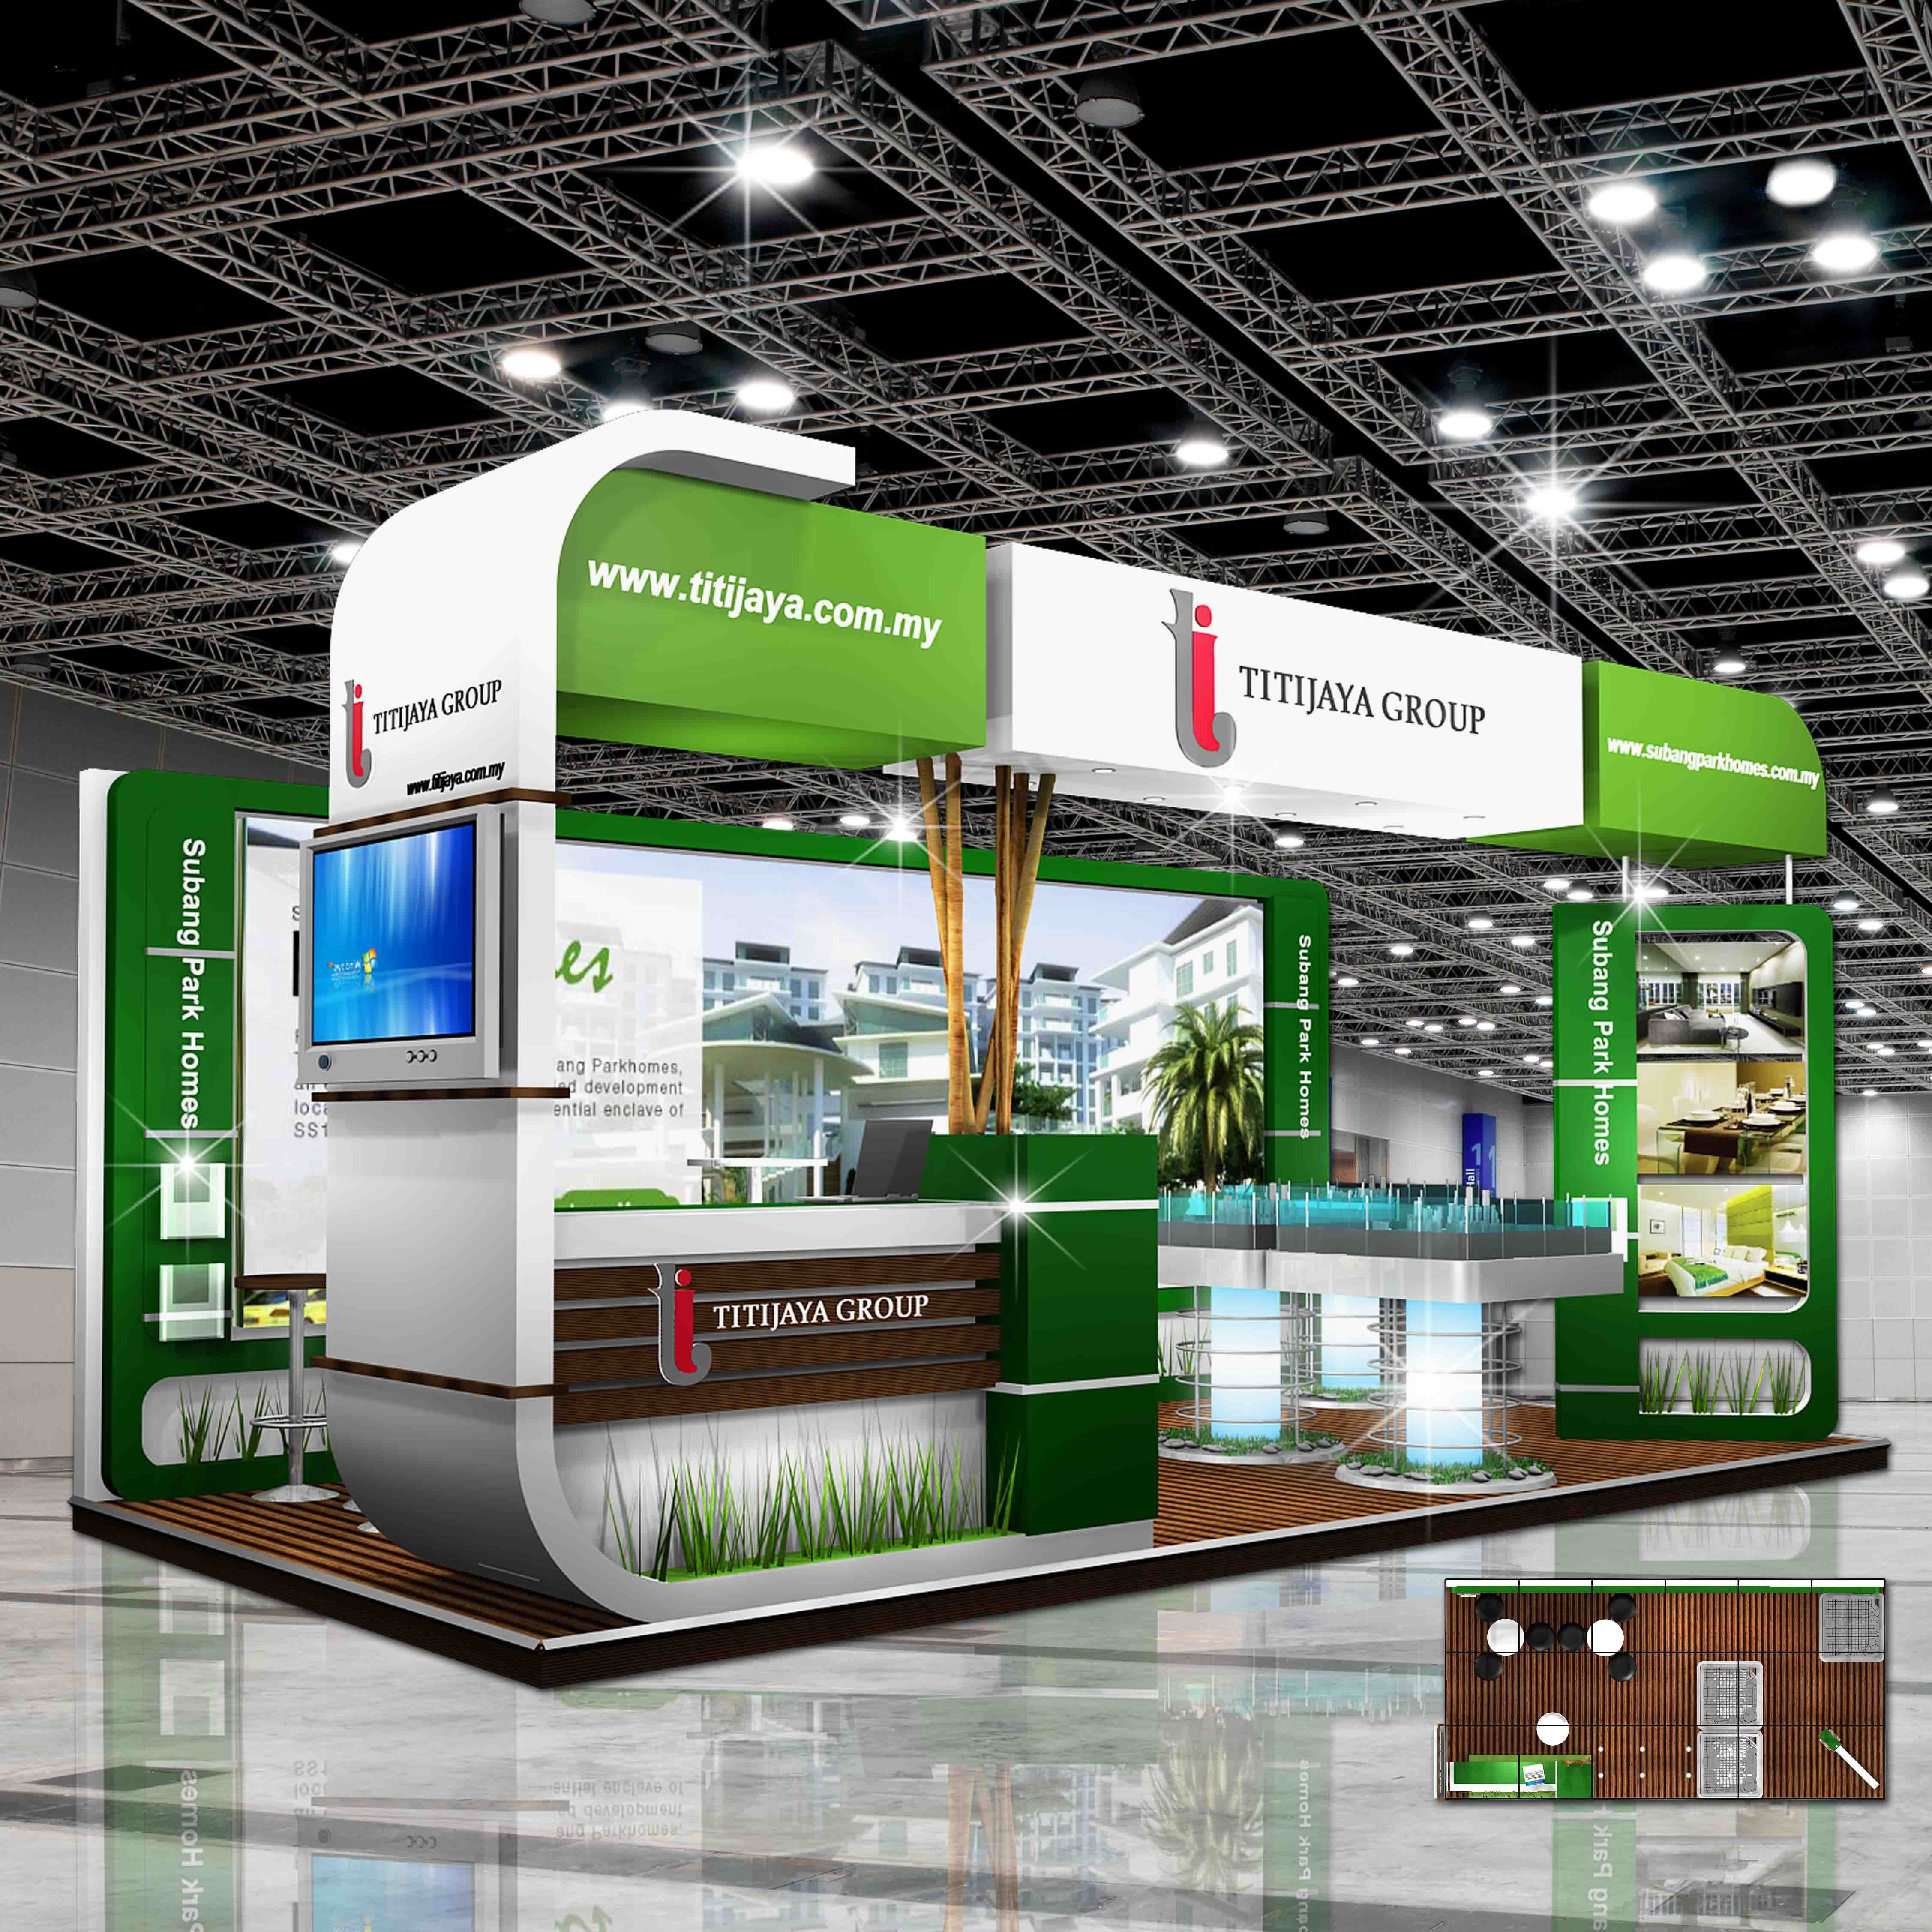 Trade Show Booth Layout : Trade show booth design exhibition creative stand